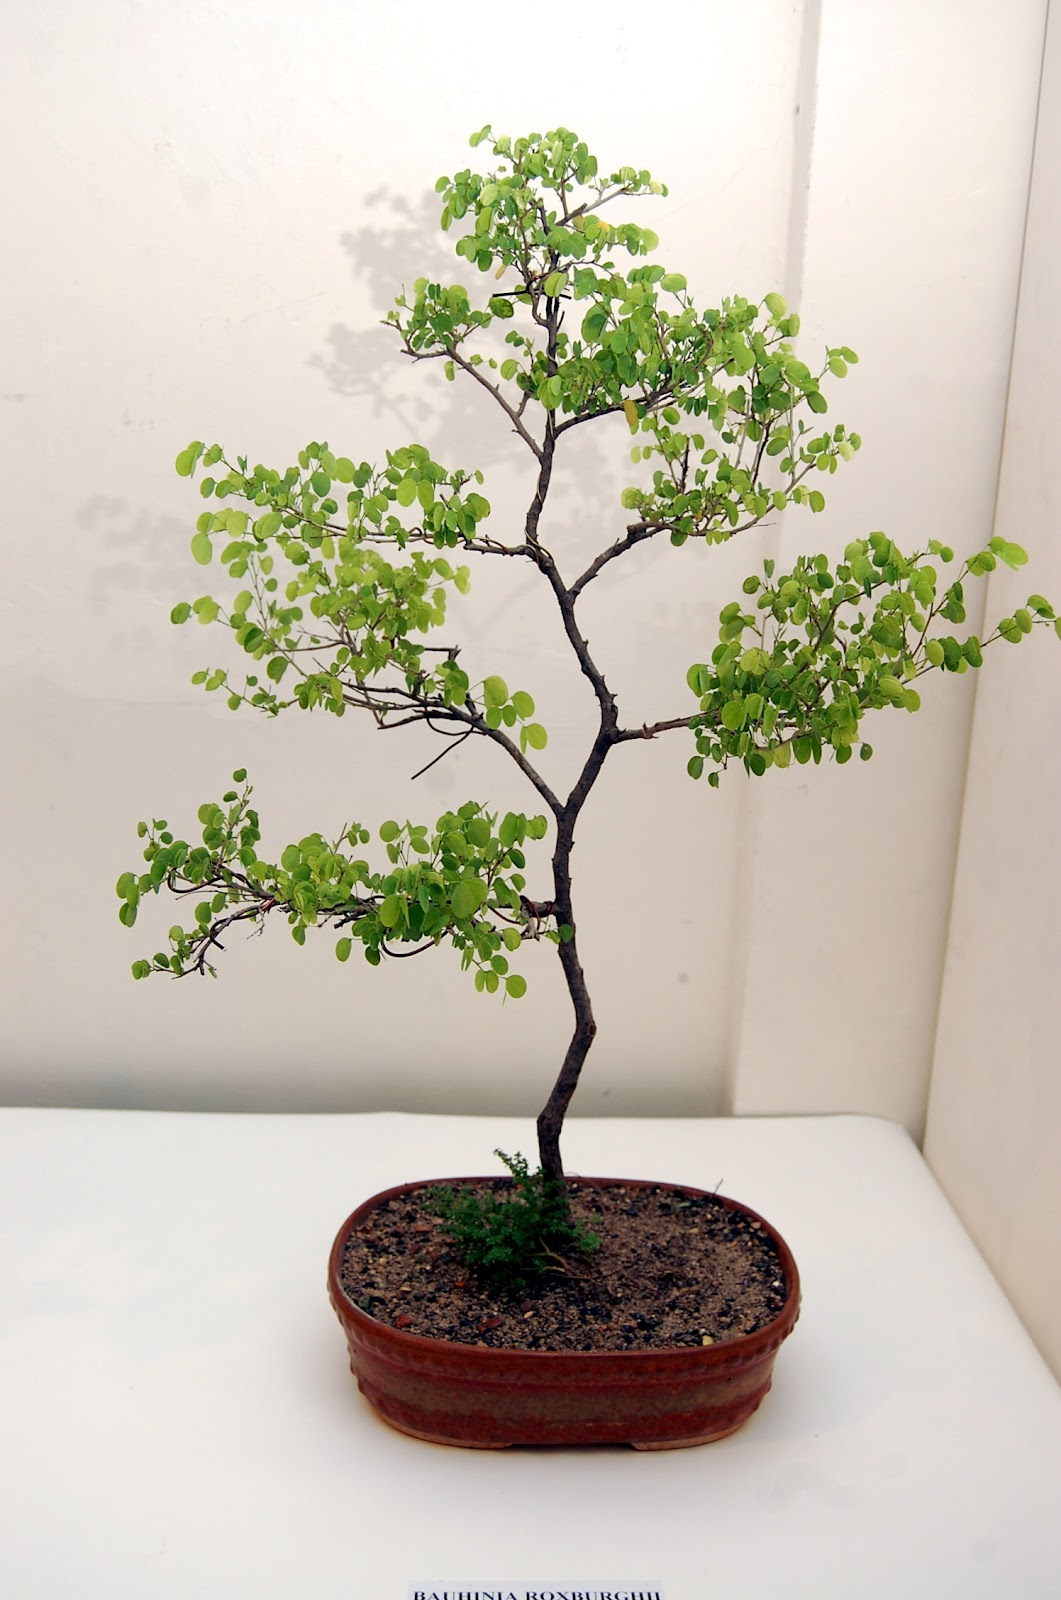 The Art And Science Of Bonsai Pictures From My Solo Bonsai Show